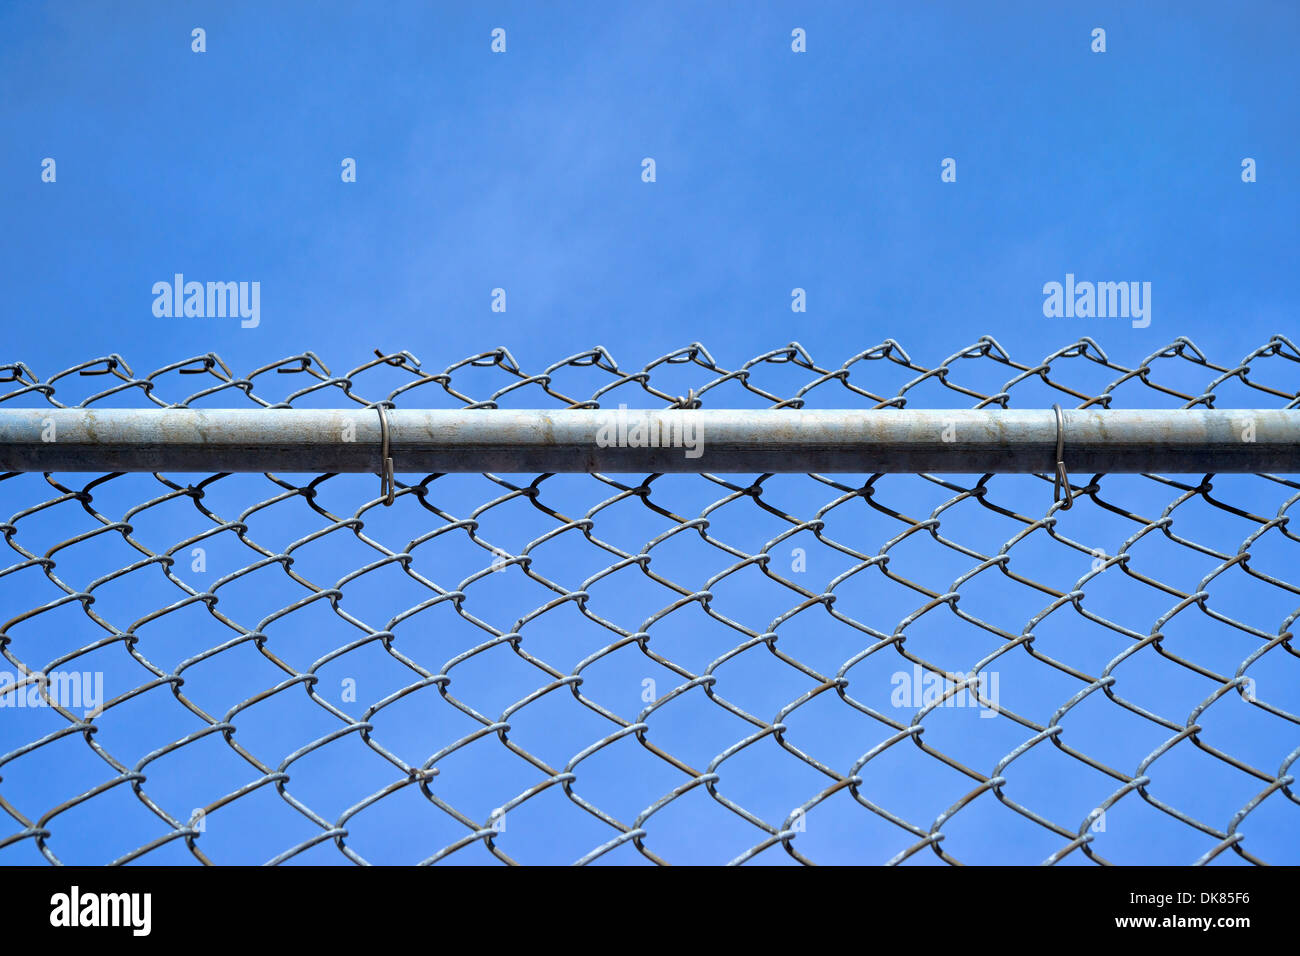 A chain link fence with a sturdy bar and fastenings against a blue sky with wispy clouds. - Stock Image